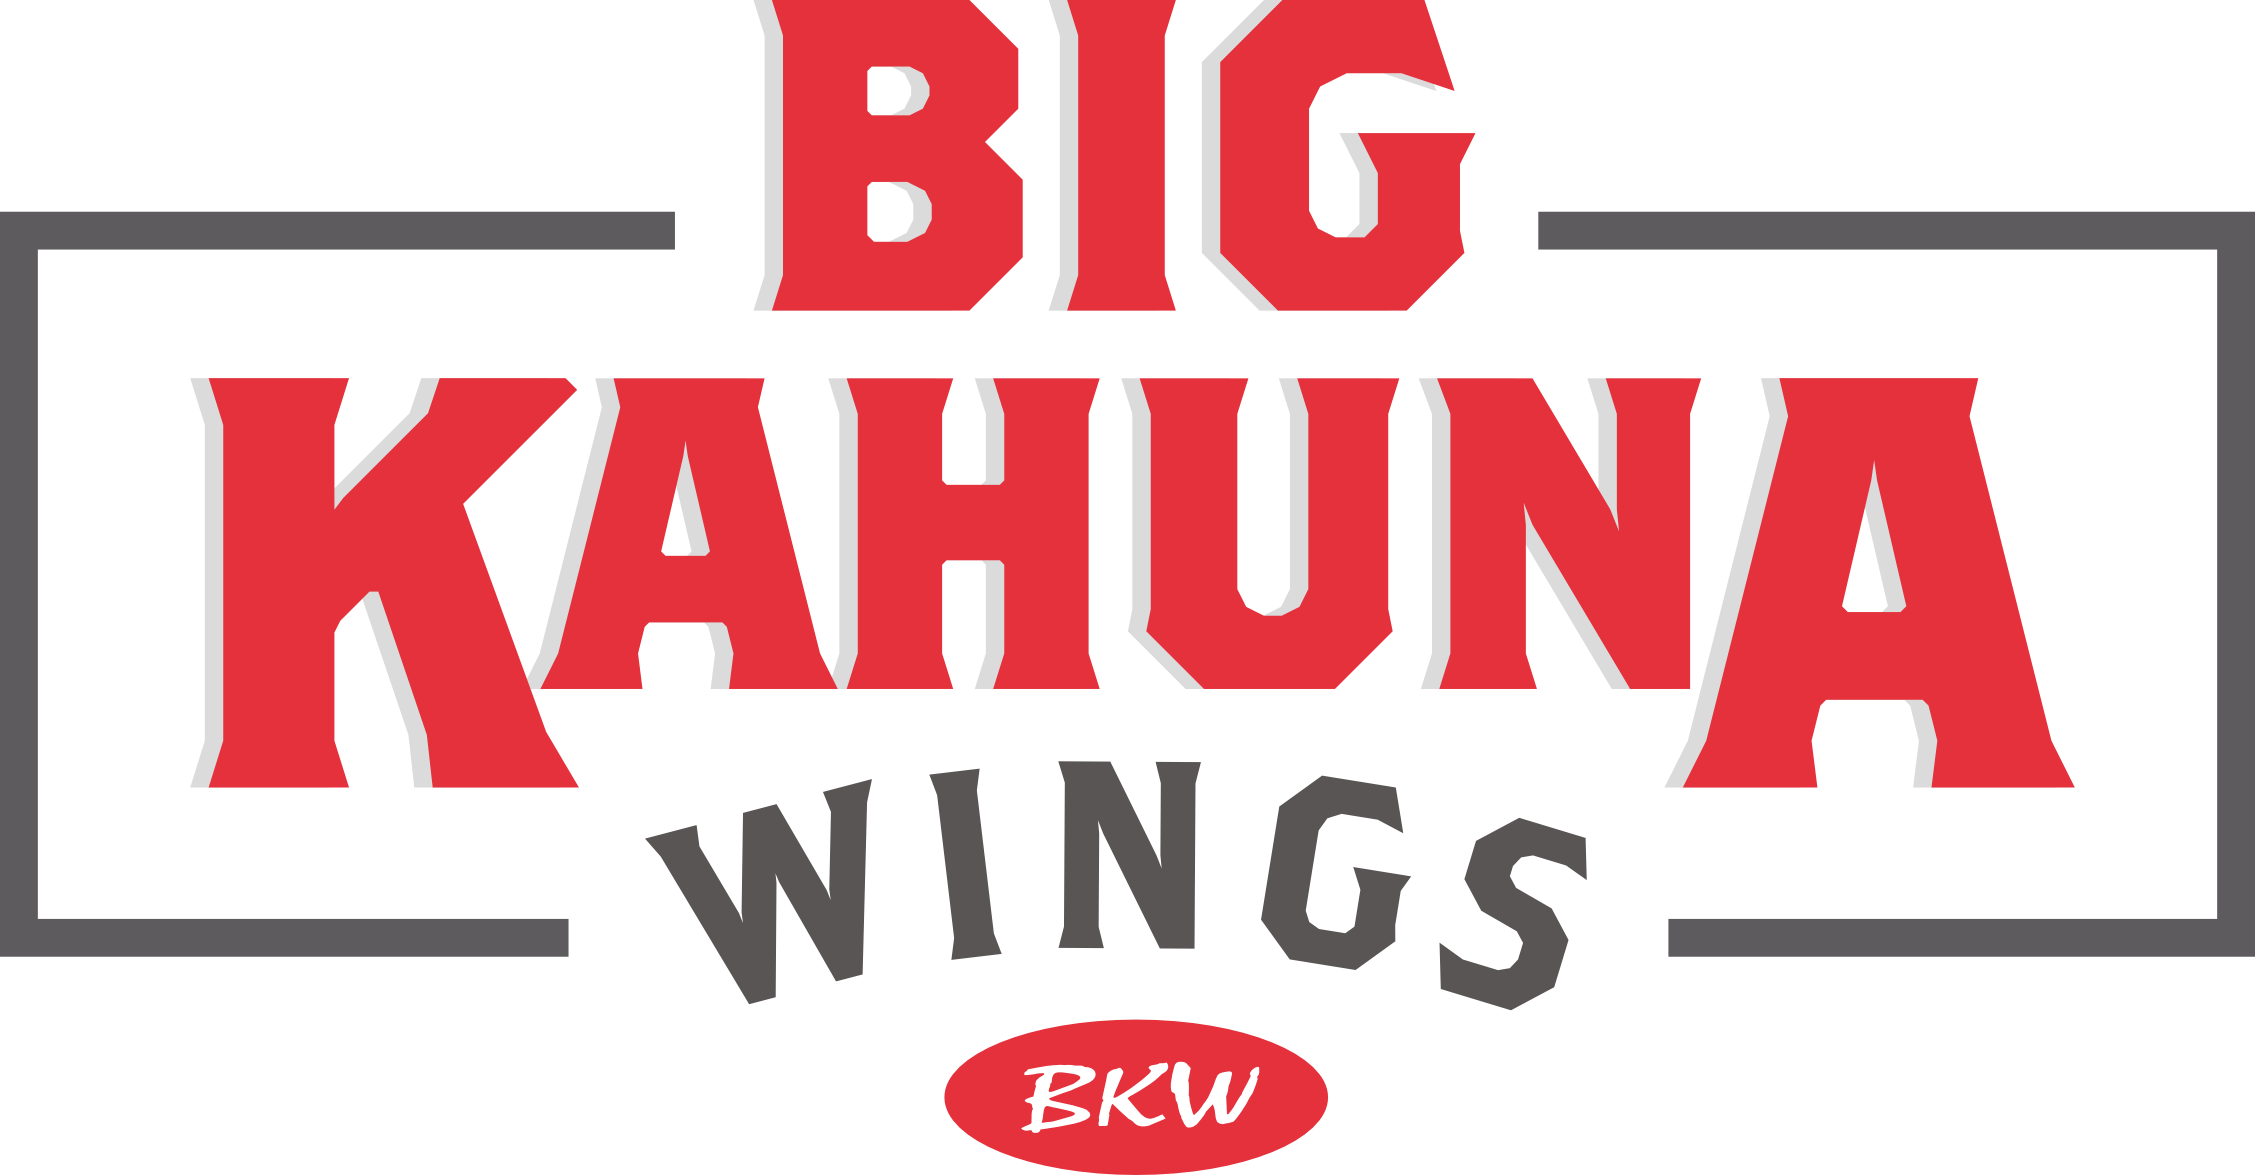 Big Kahuna Wings